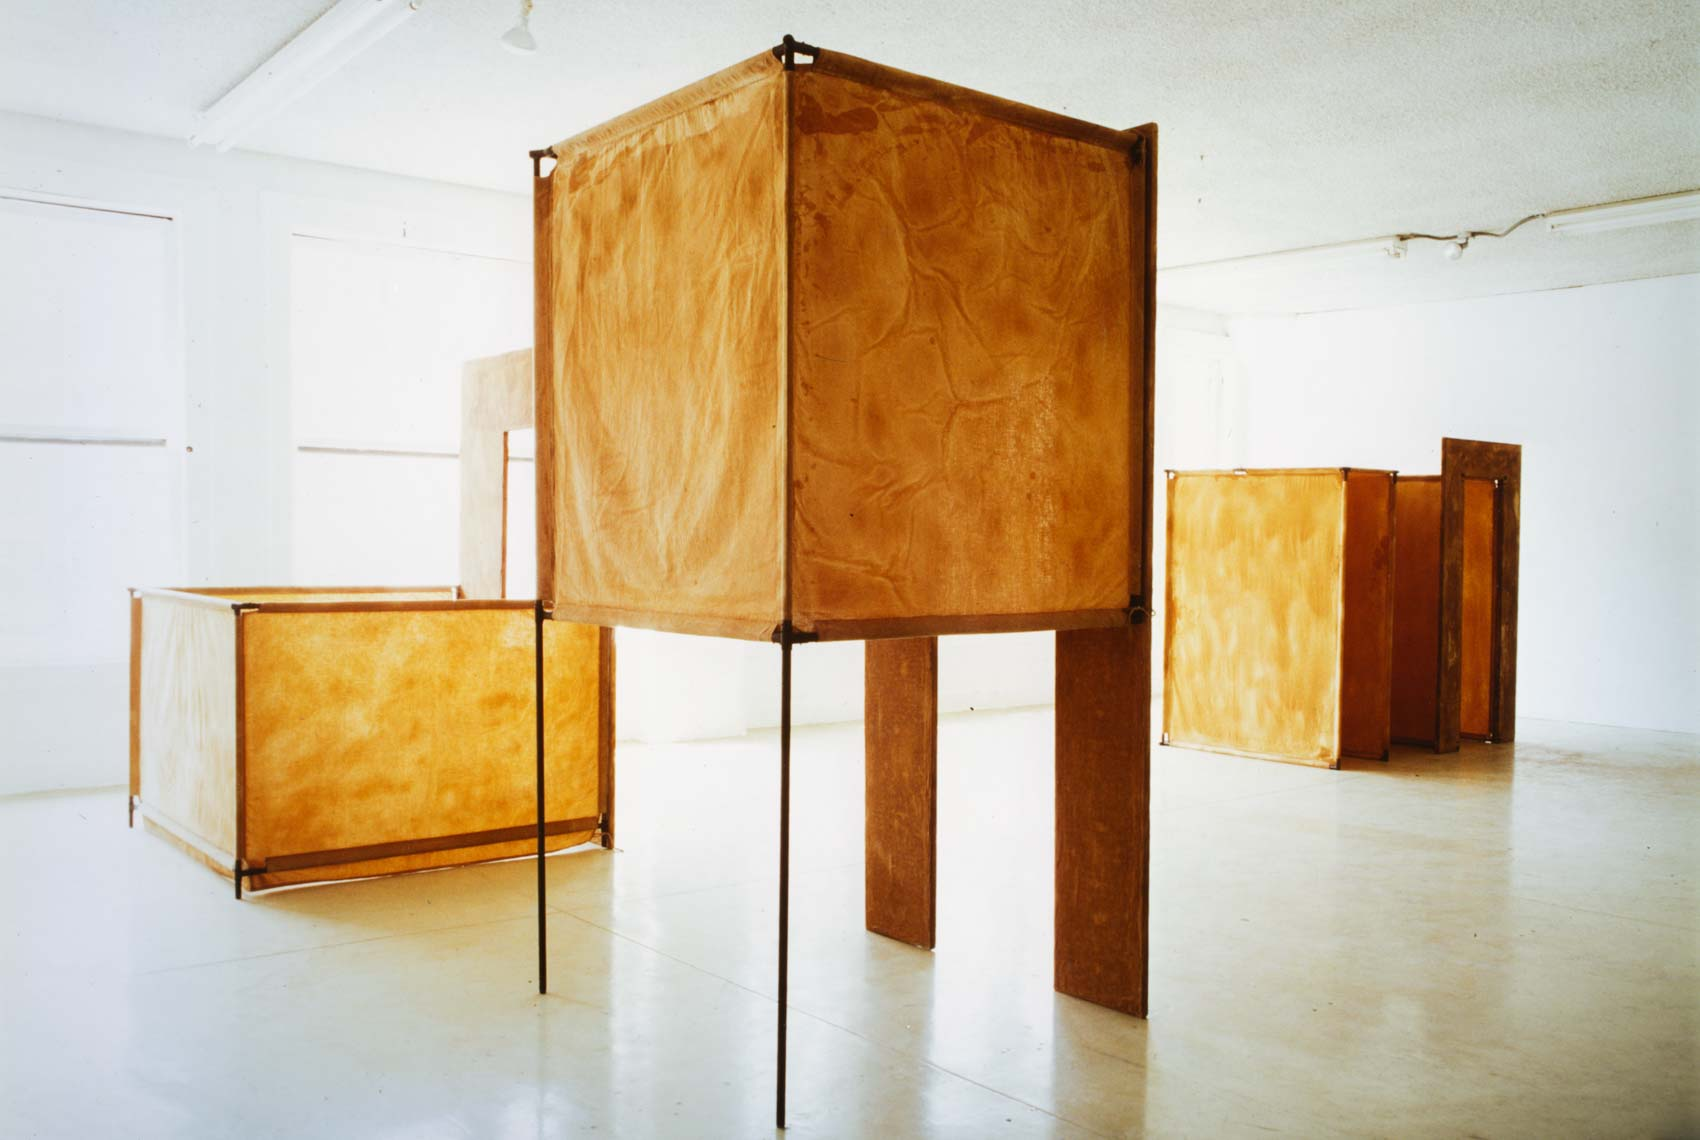 BROWNROOMS, 1977-78